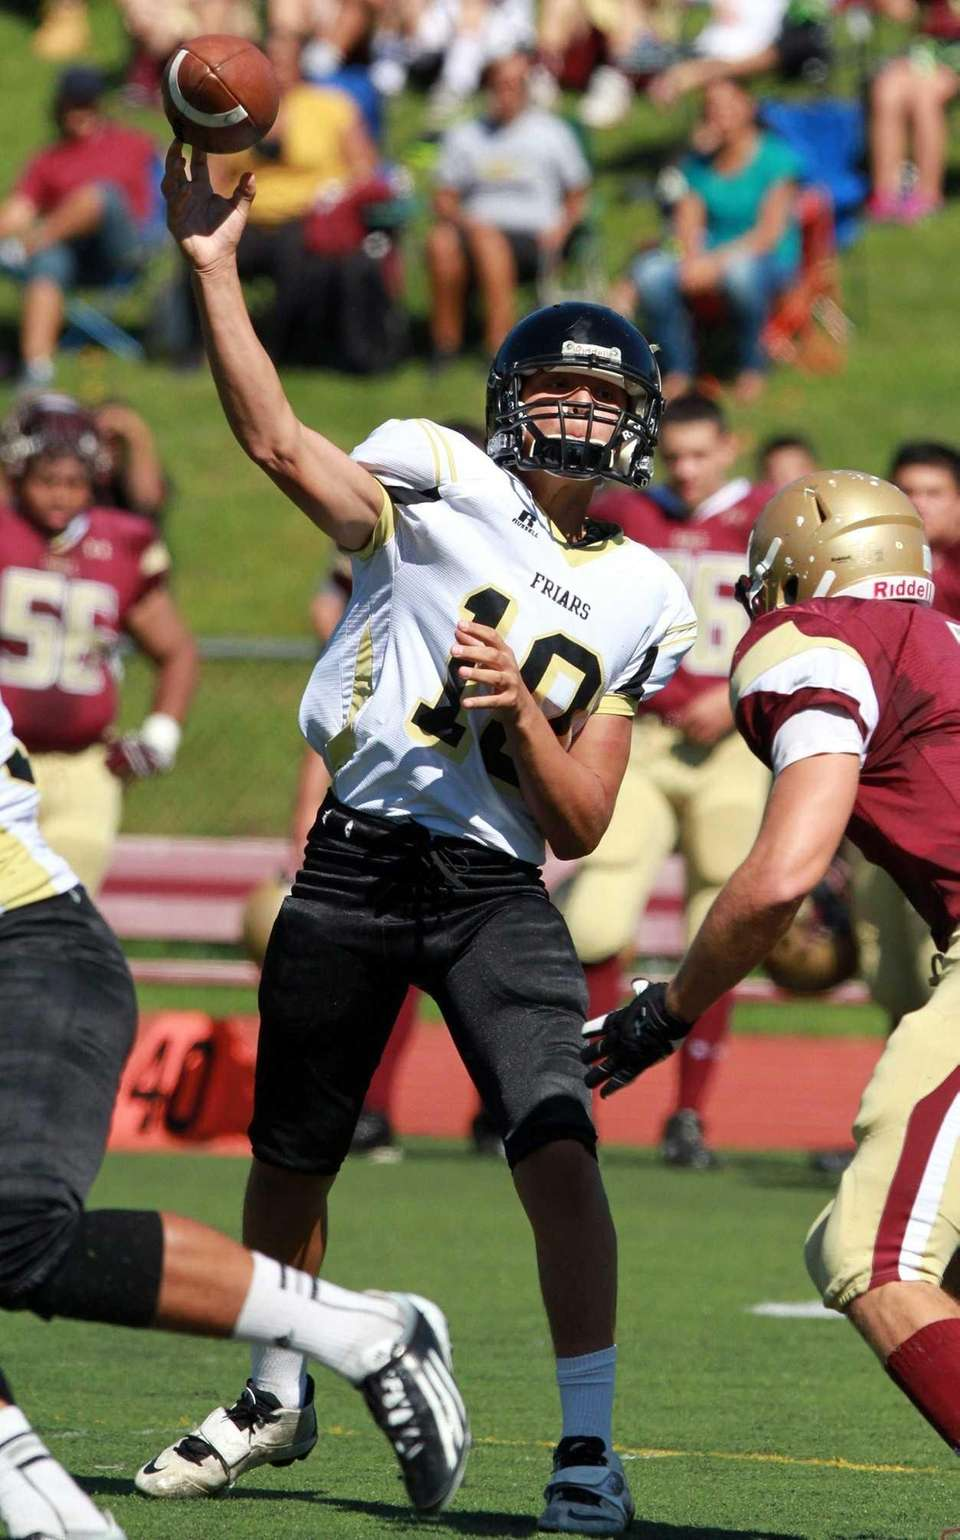 St. Anthony's quarterback Dominick Calistro throws a sideline